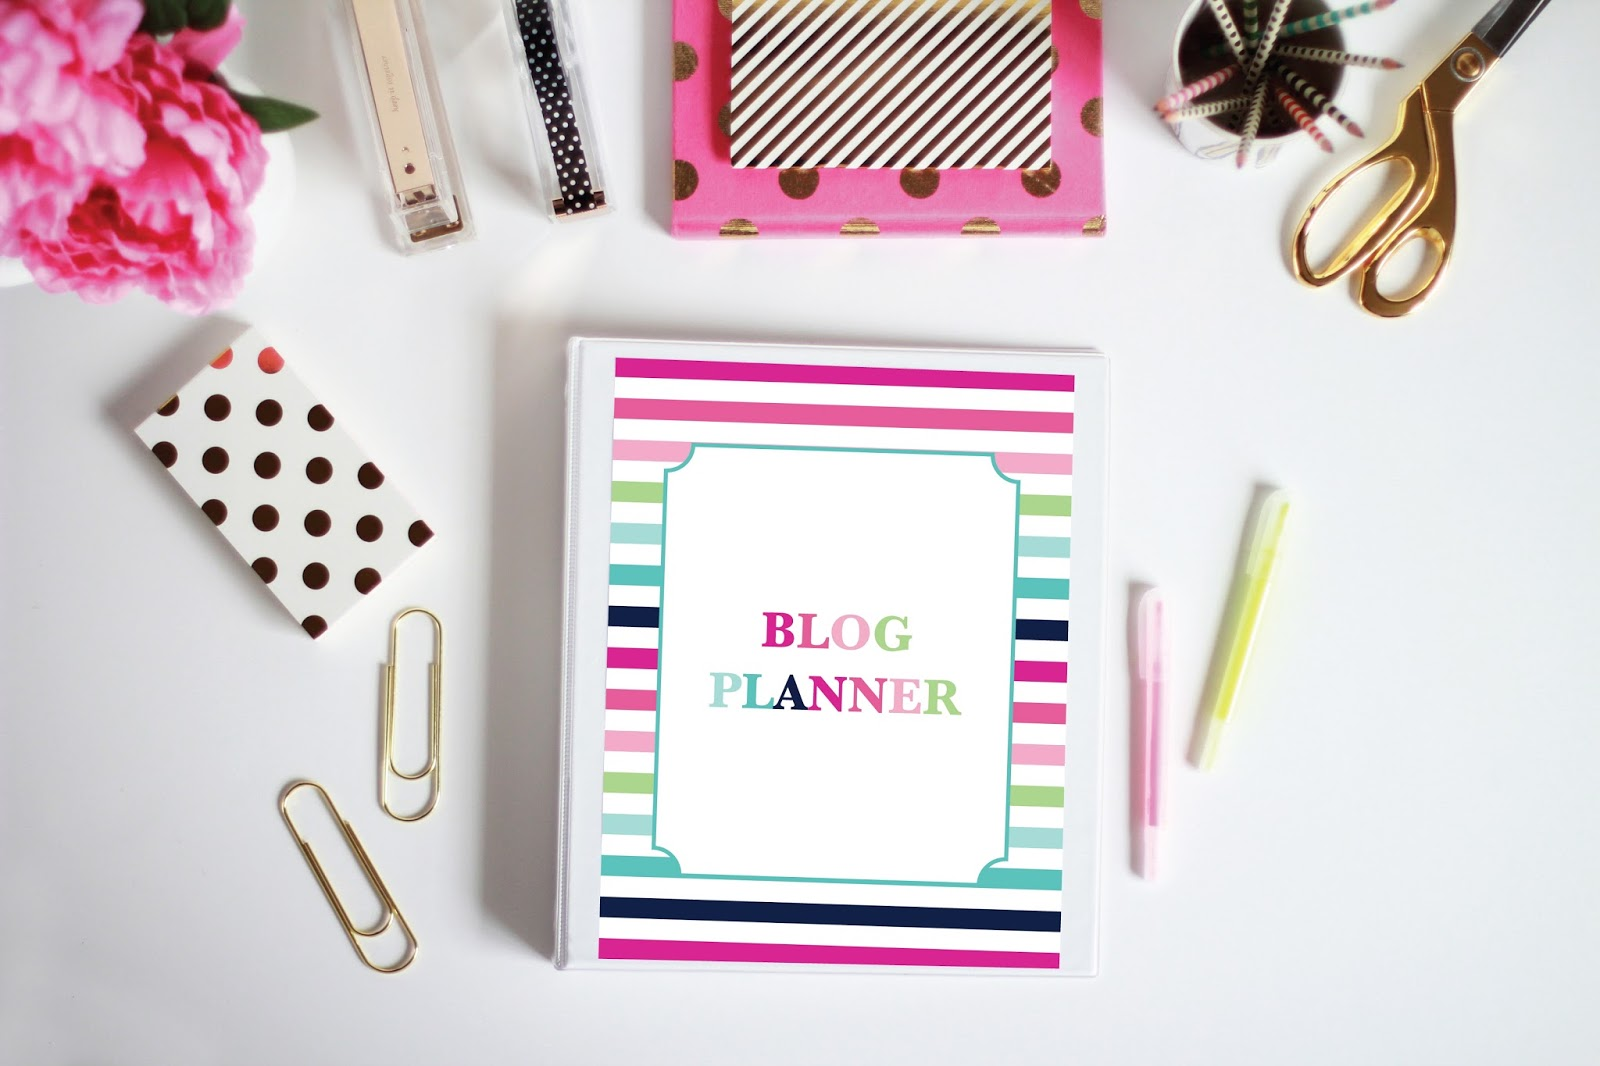 Printable Blog Planner by Jessica Marie Design